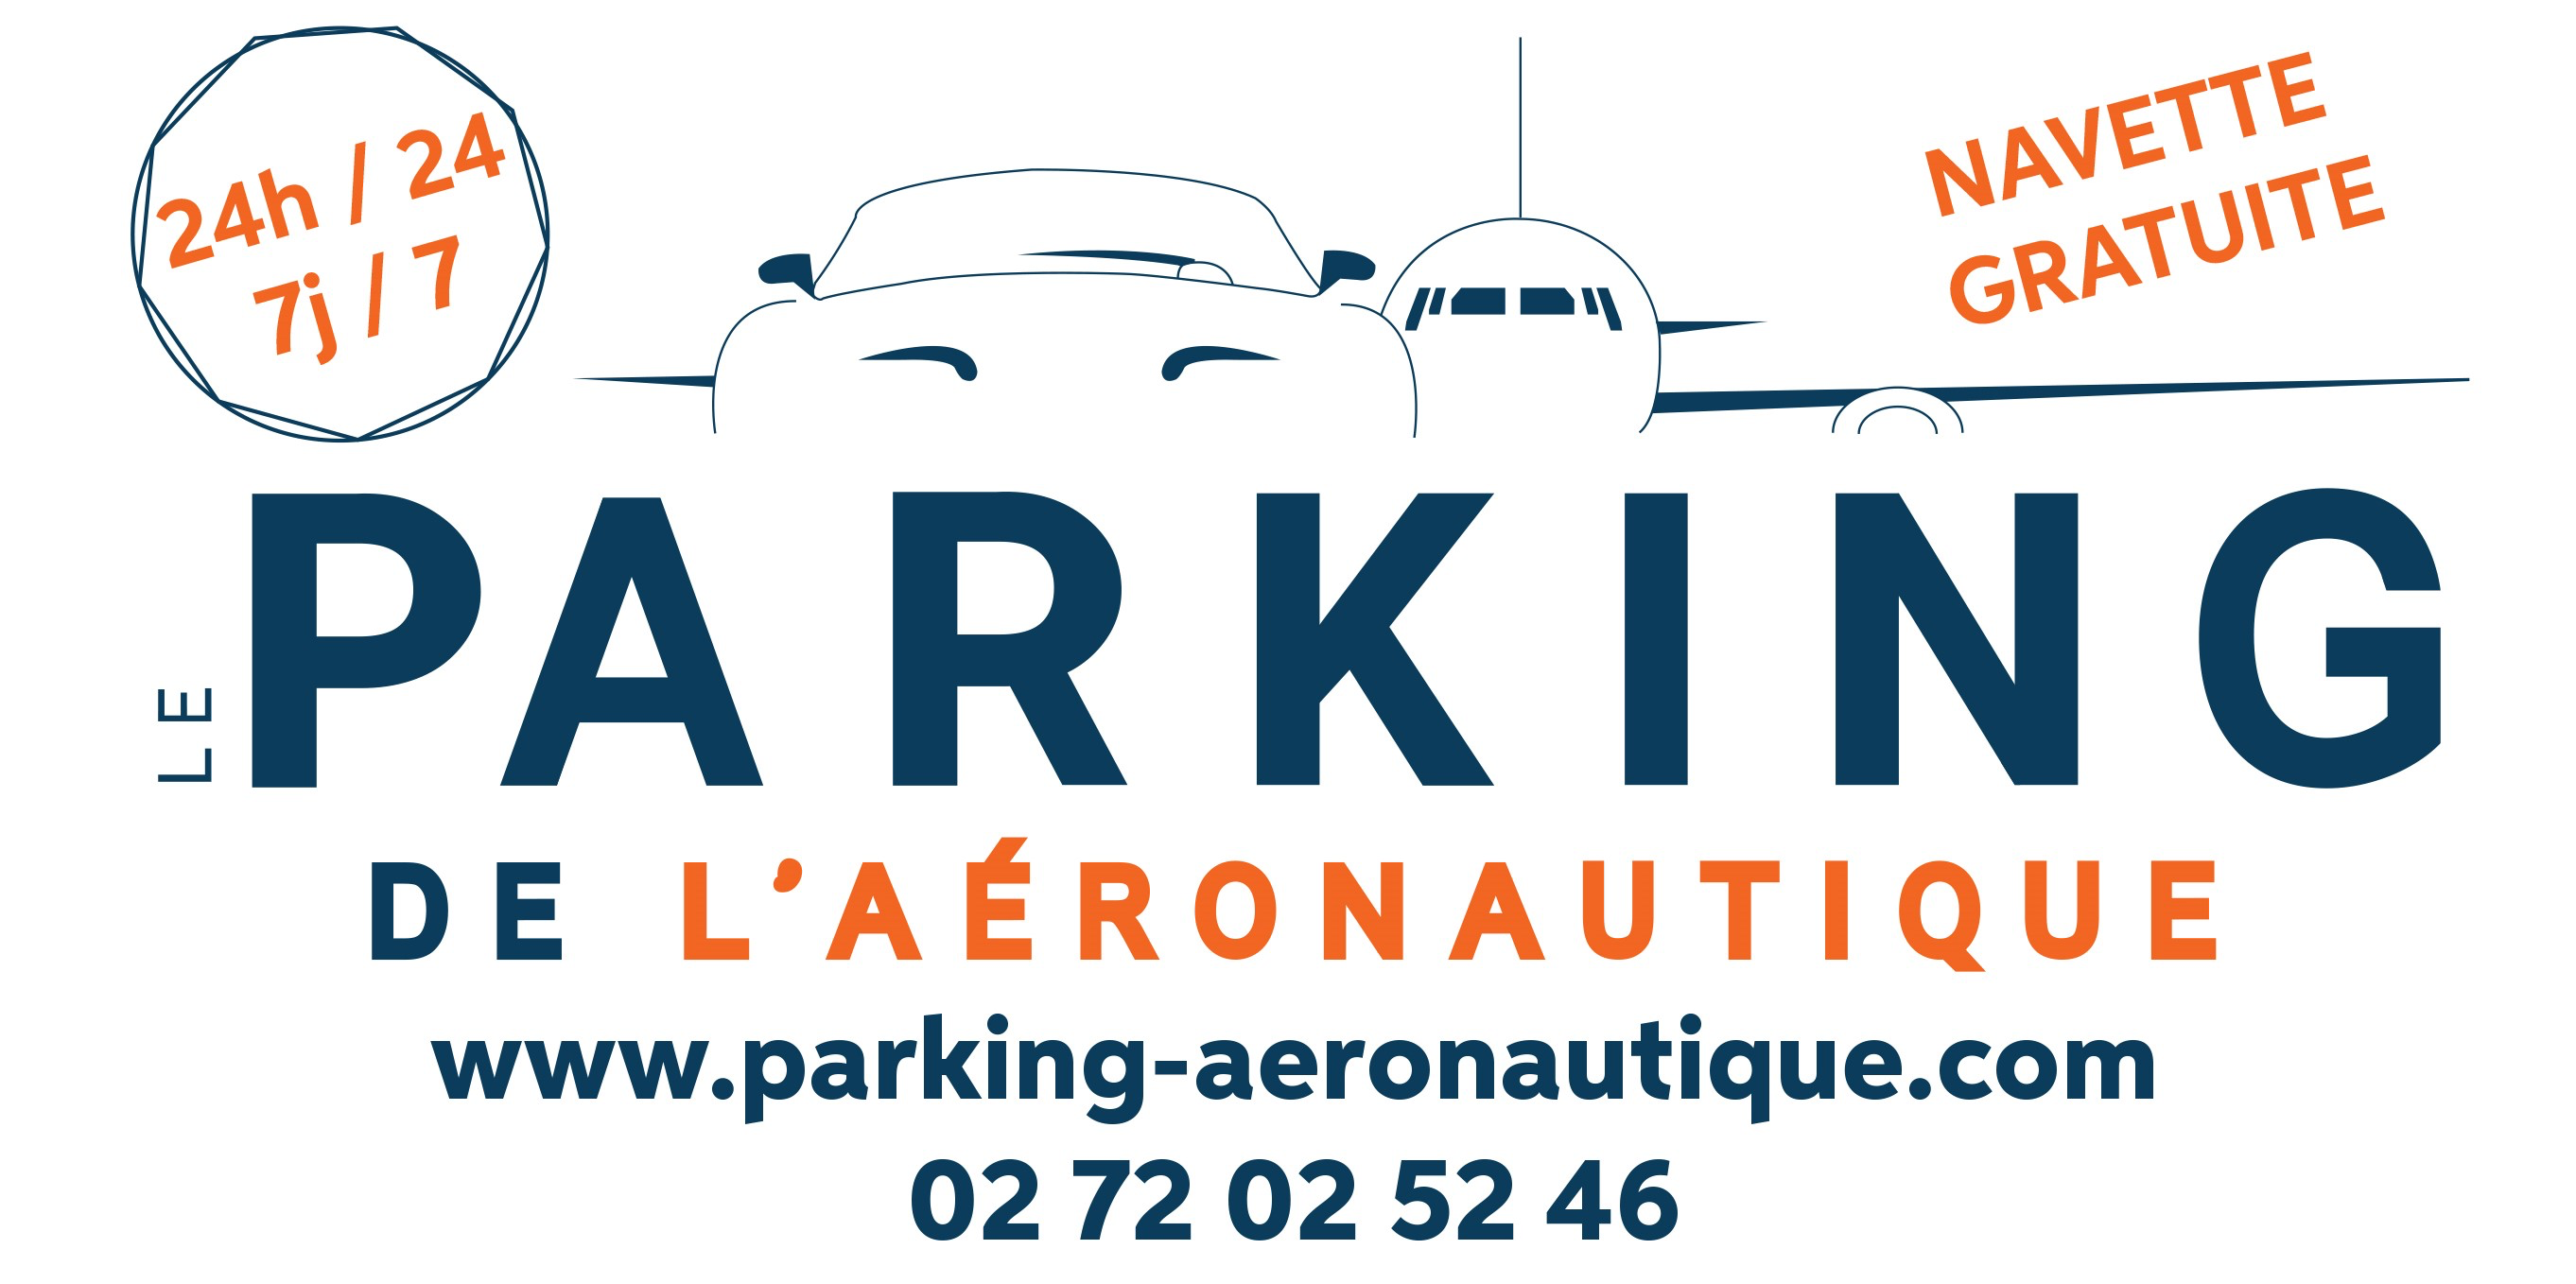 Parking de l'Aéronautique